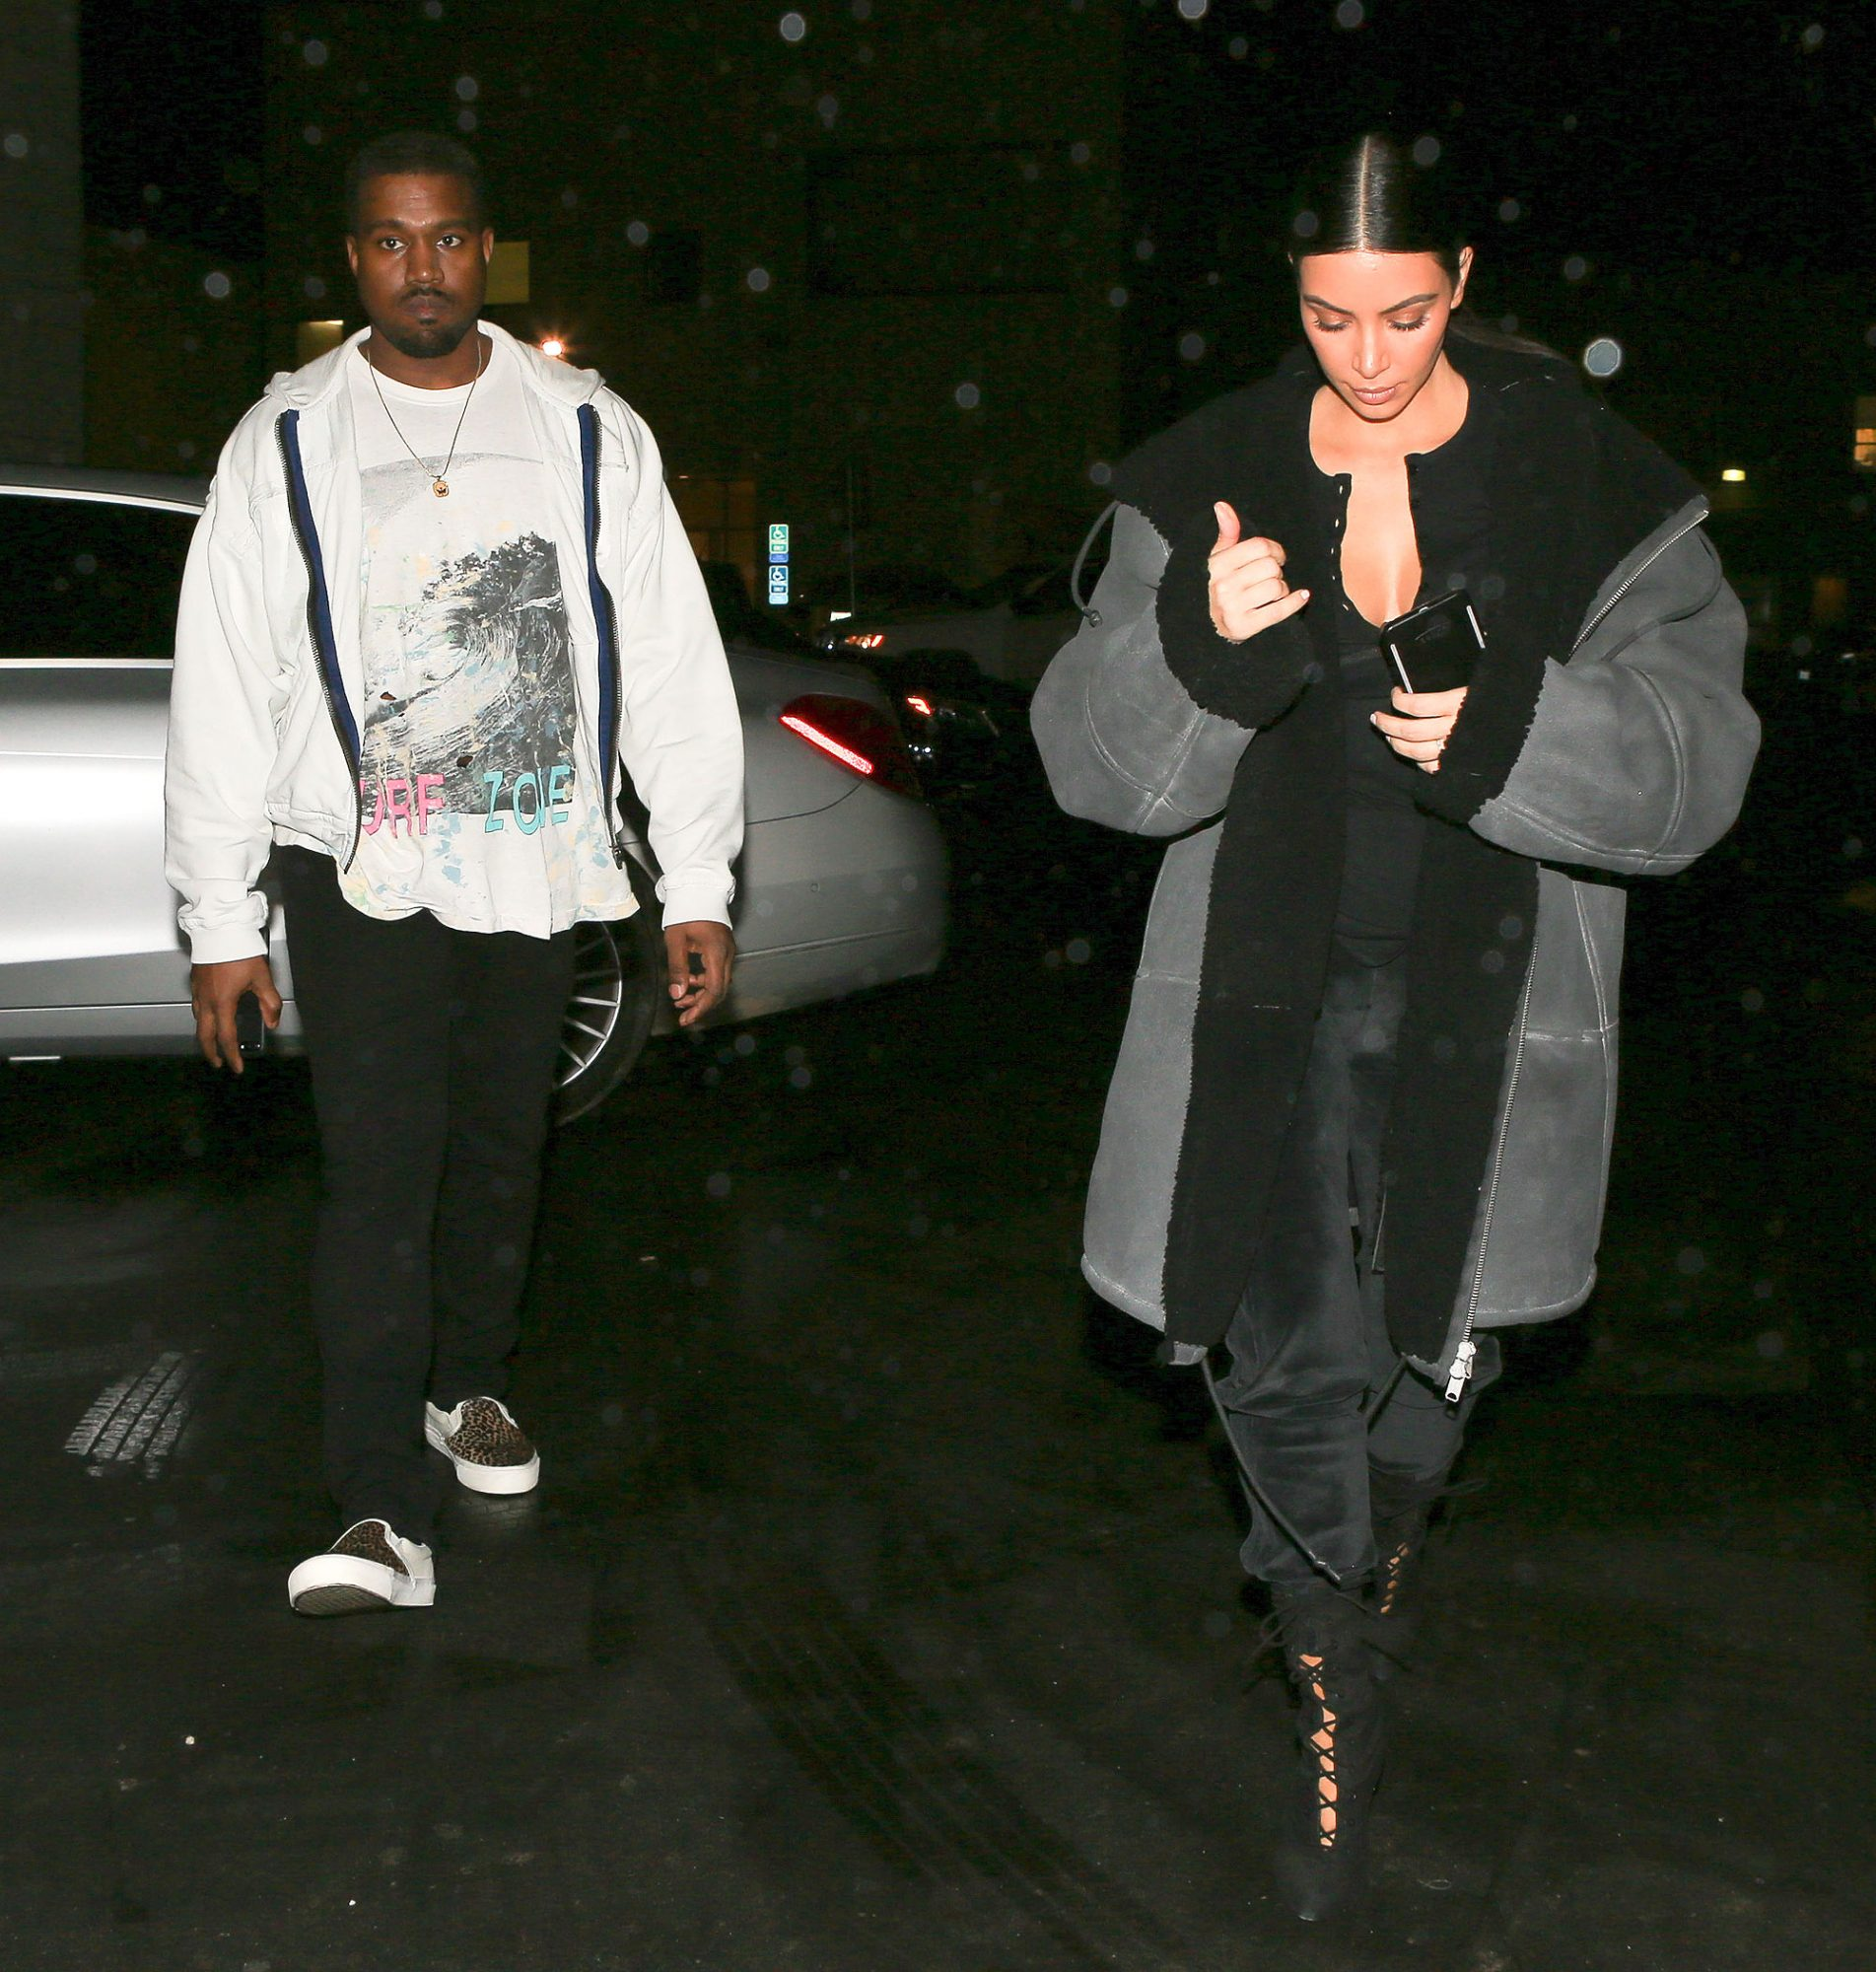 PREMIUM EXCLUSIVE Please contact X17 before any use of these exclusive photos - x17@x17agency.com So romantic! Kim Kardashian and her Valentine Kanye West stopped at Epione together to get pampered before romantic dinner at italian eatery  feb 7, 2017 /X17online.com